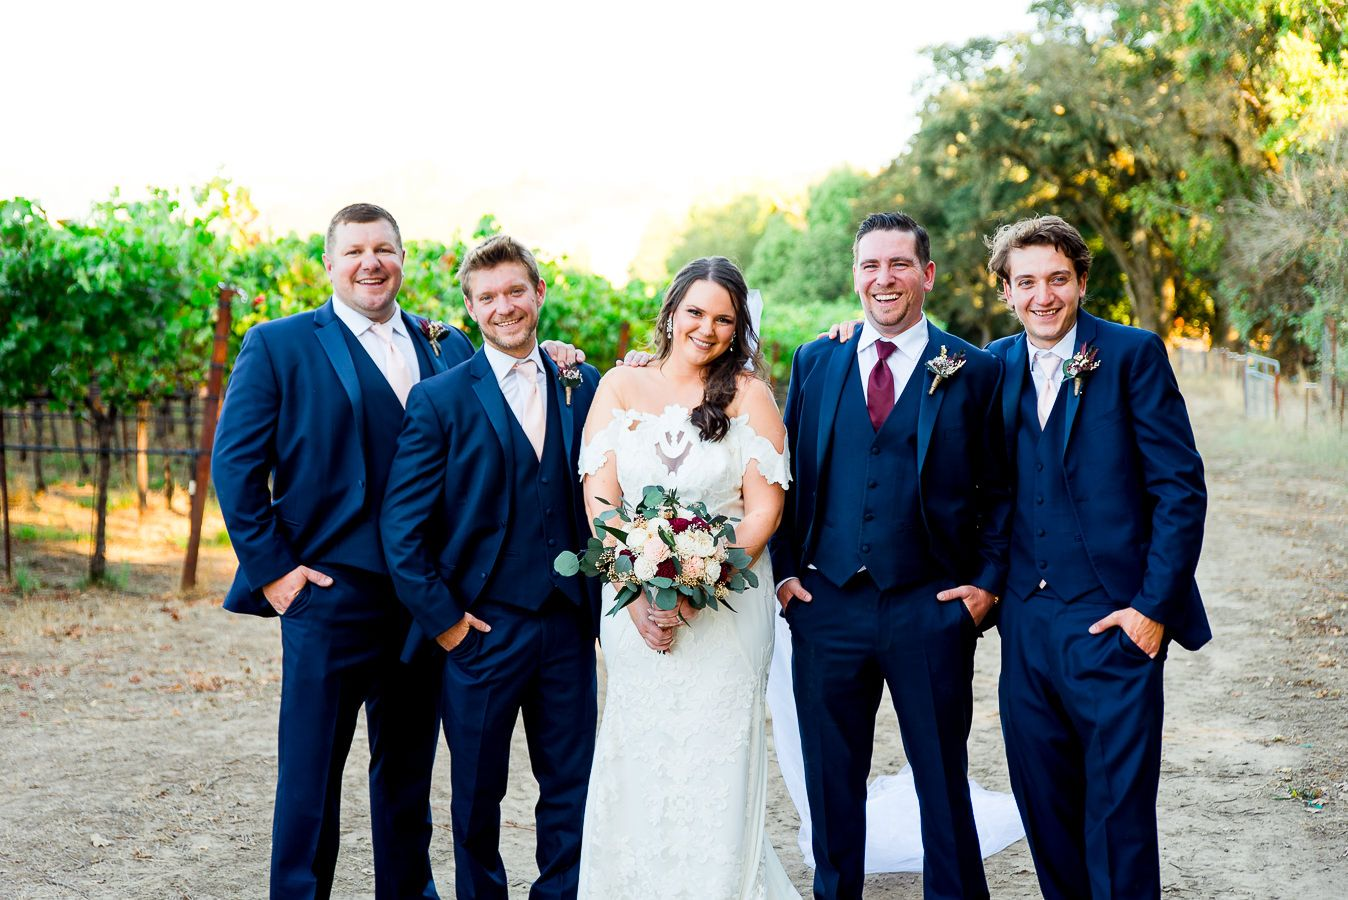 groomsmen in navy suits surround bride on dirt path at Pennyroyal Farm